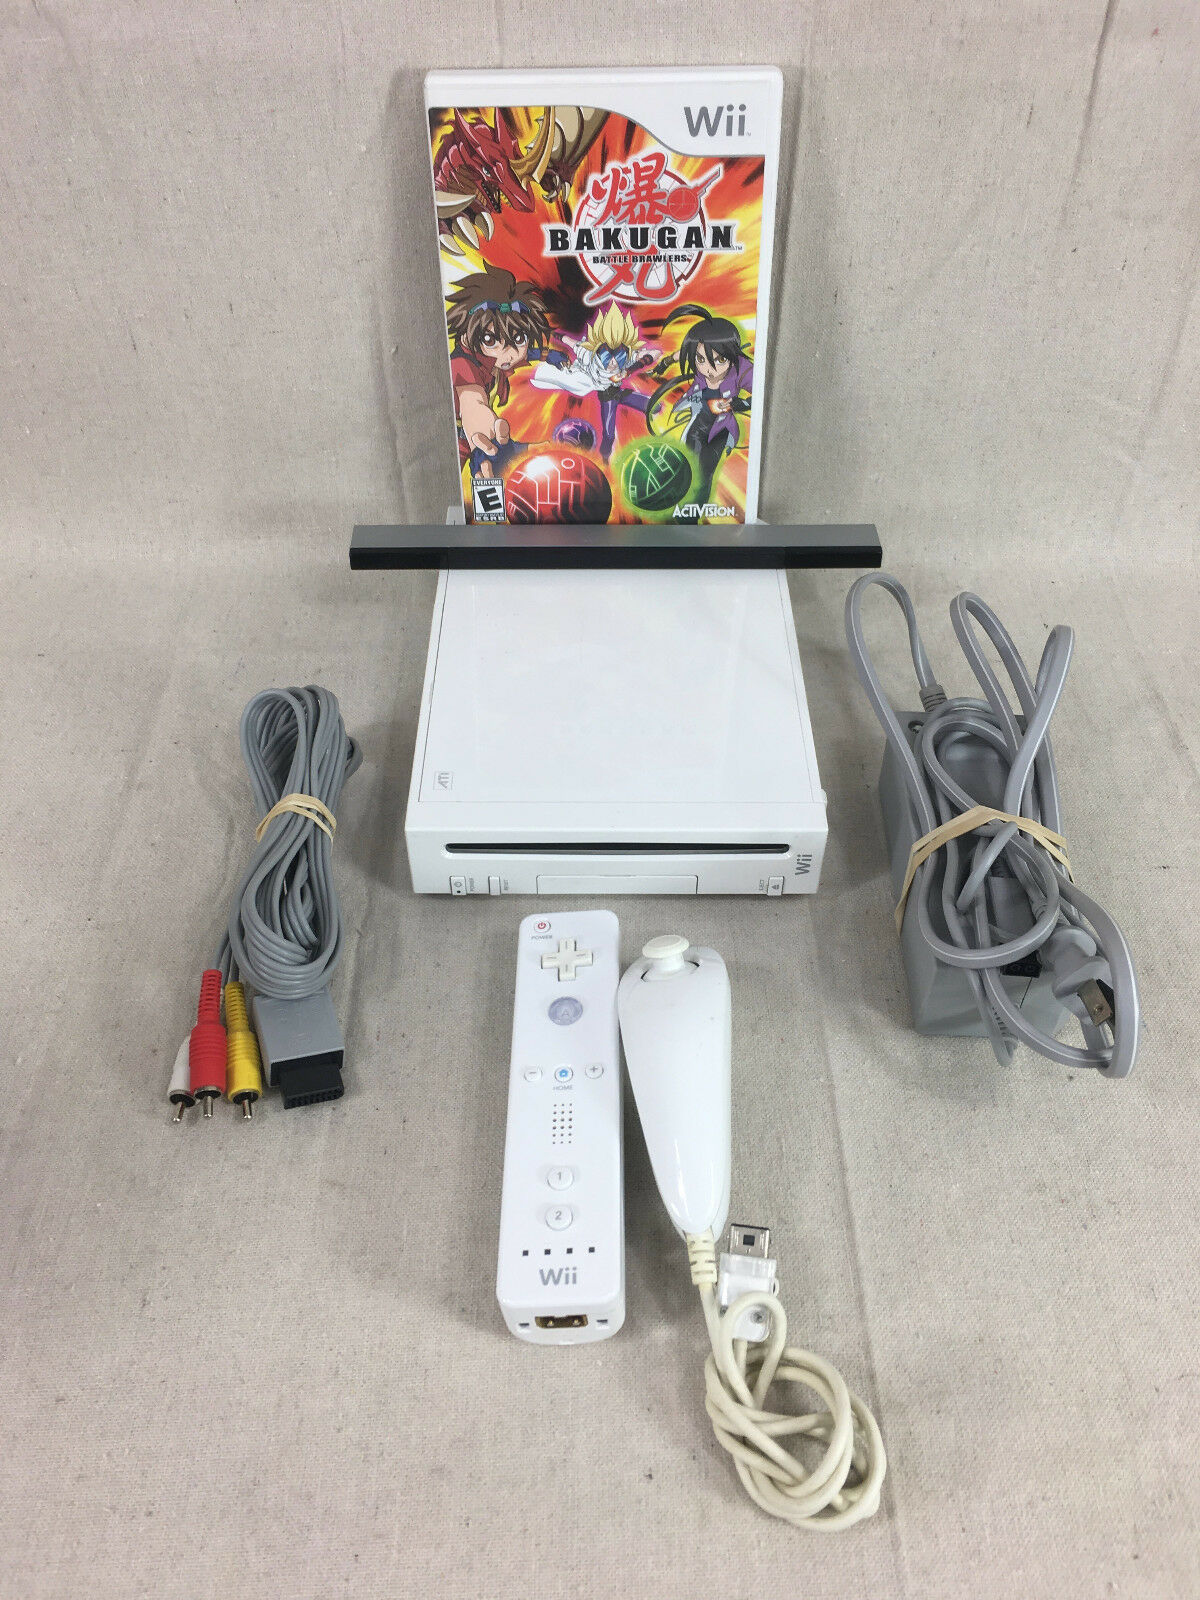 Wii, Includes 1 Controller 1 Nunchuk, Sensor Bar and Bakugan Battle Brawlers